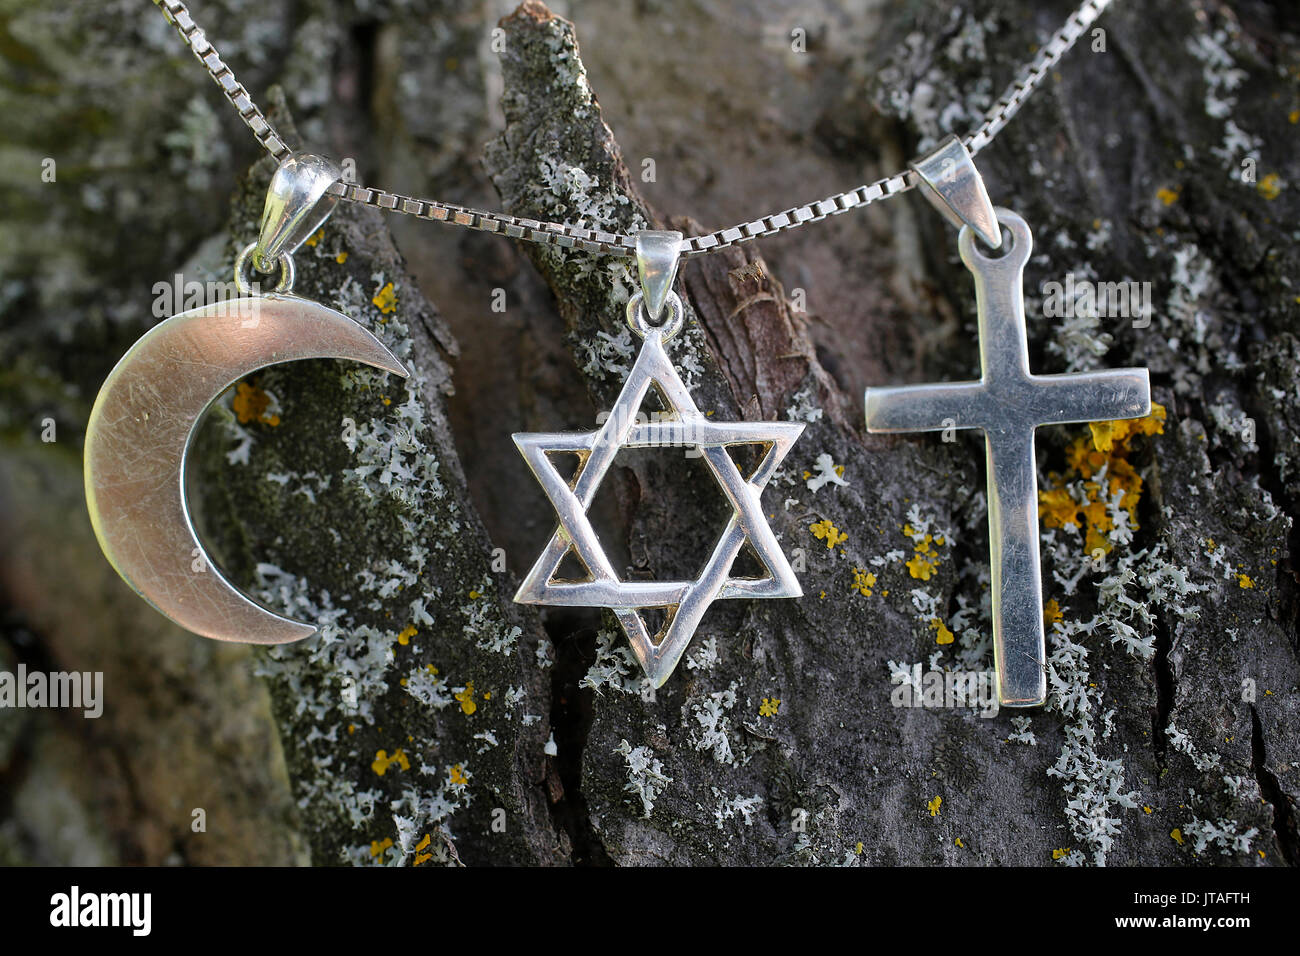 Symbols of Islam, Judaism and Christianity, Eure, France, Europe Stock Photo